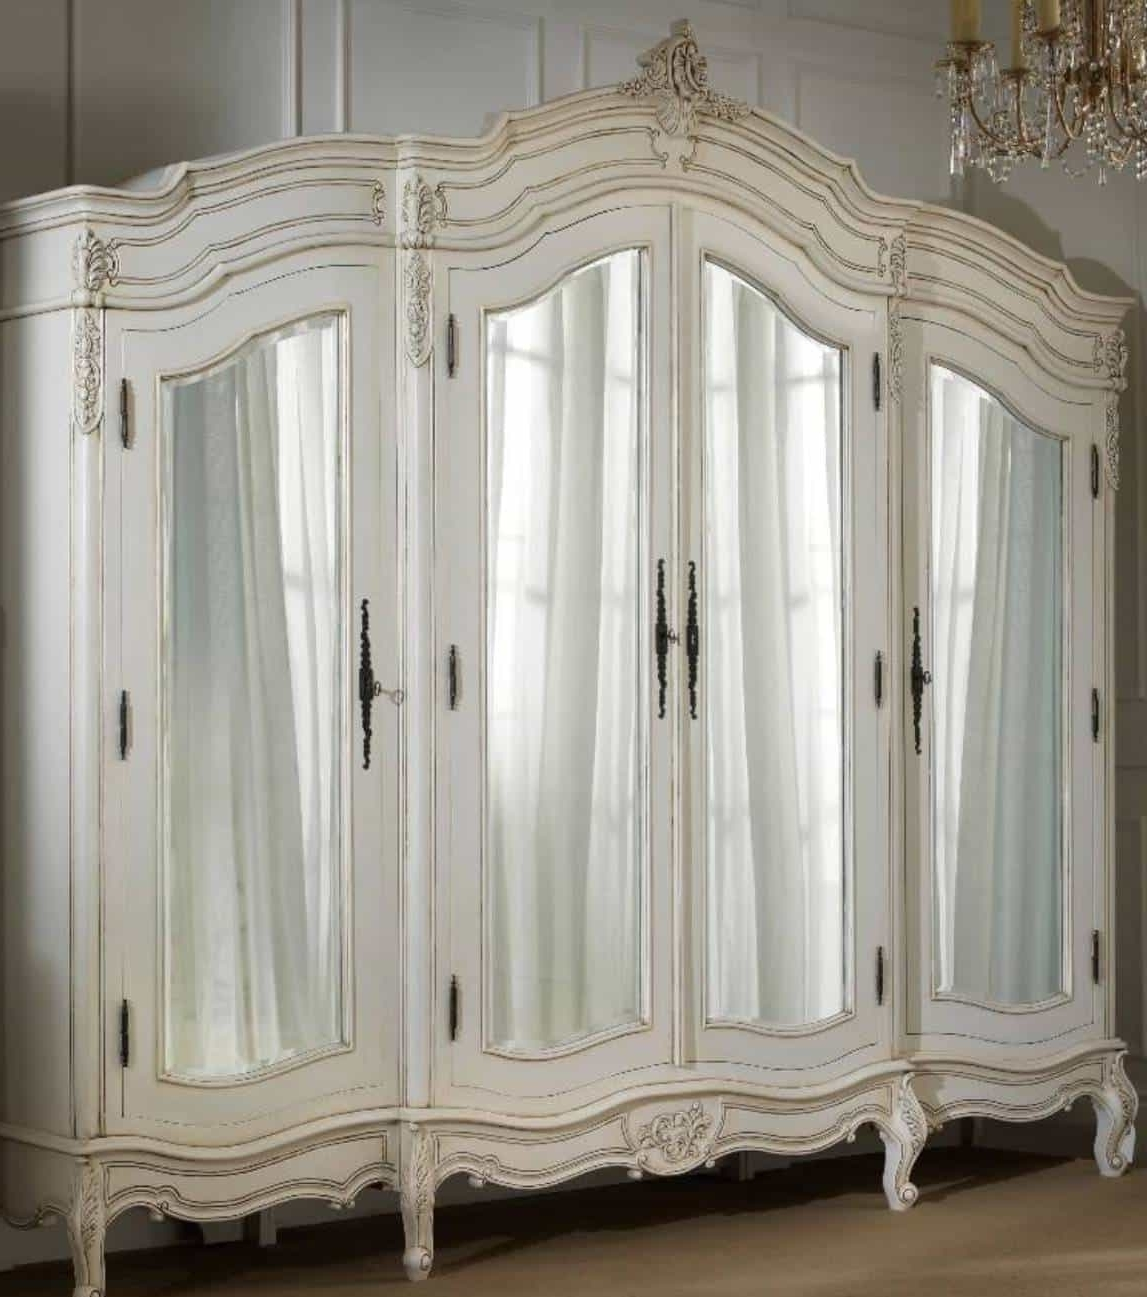 White French Armoire Wardrobe With Mirror : Beautiful French Within Most Popular White French Armoire Wardrobes (View 13 of 15)